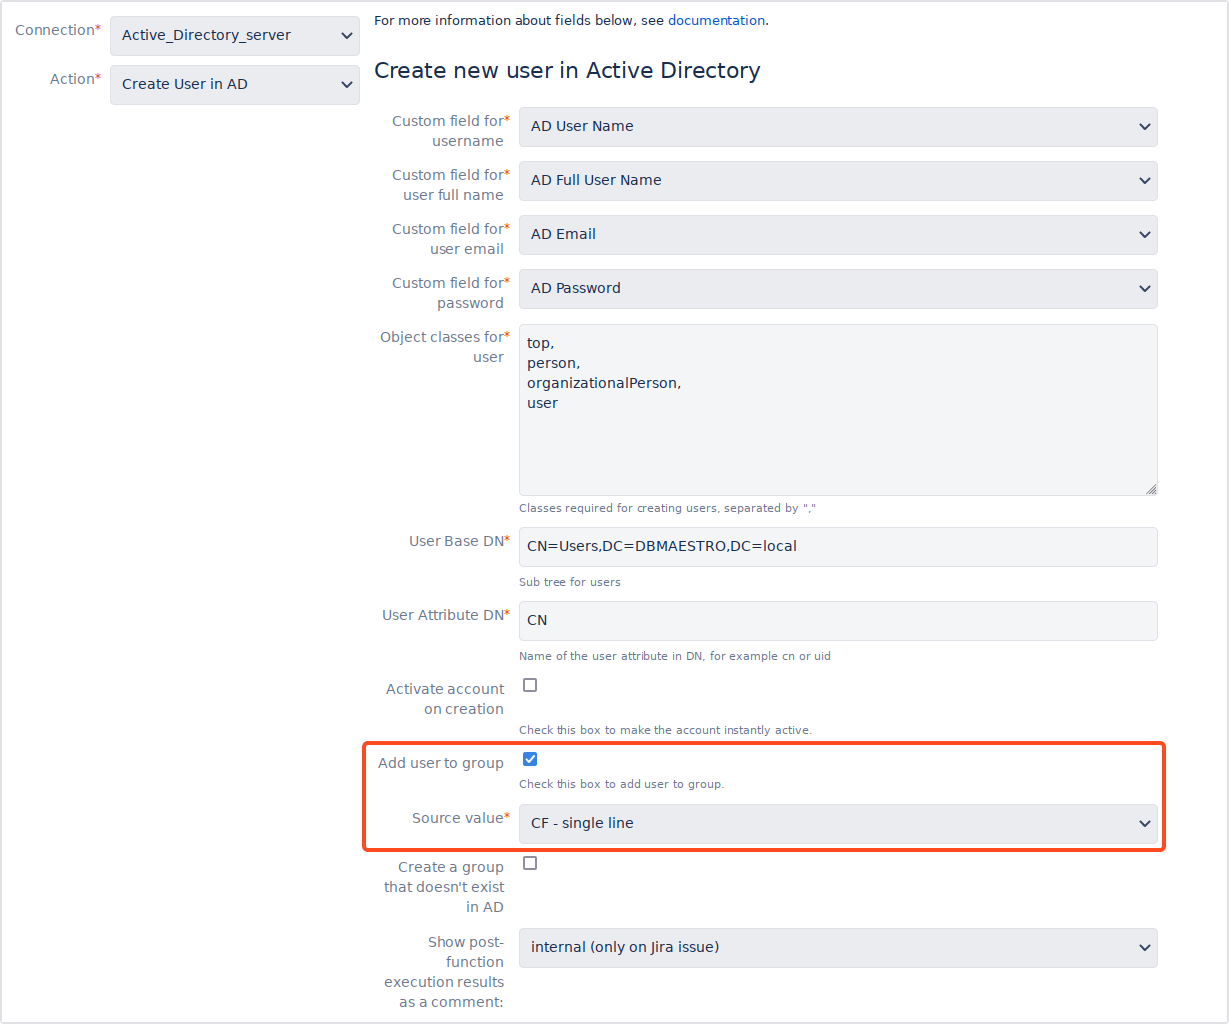 Active Directory Attributes Sync for Jira - Update Data: Creating users and adding them to AD groups simultaneously